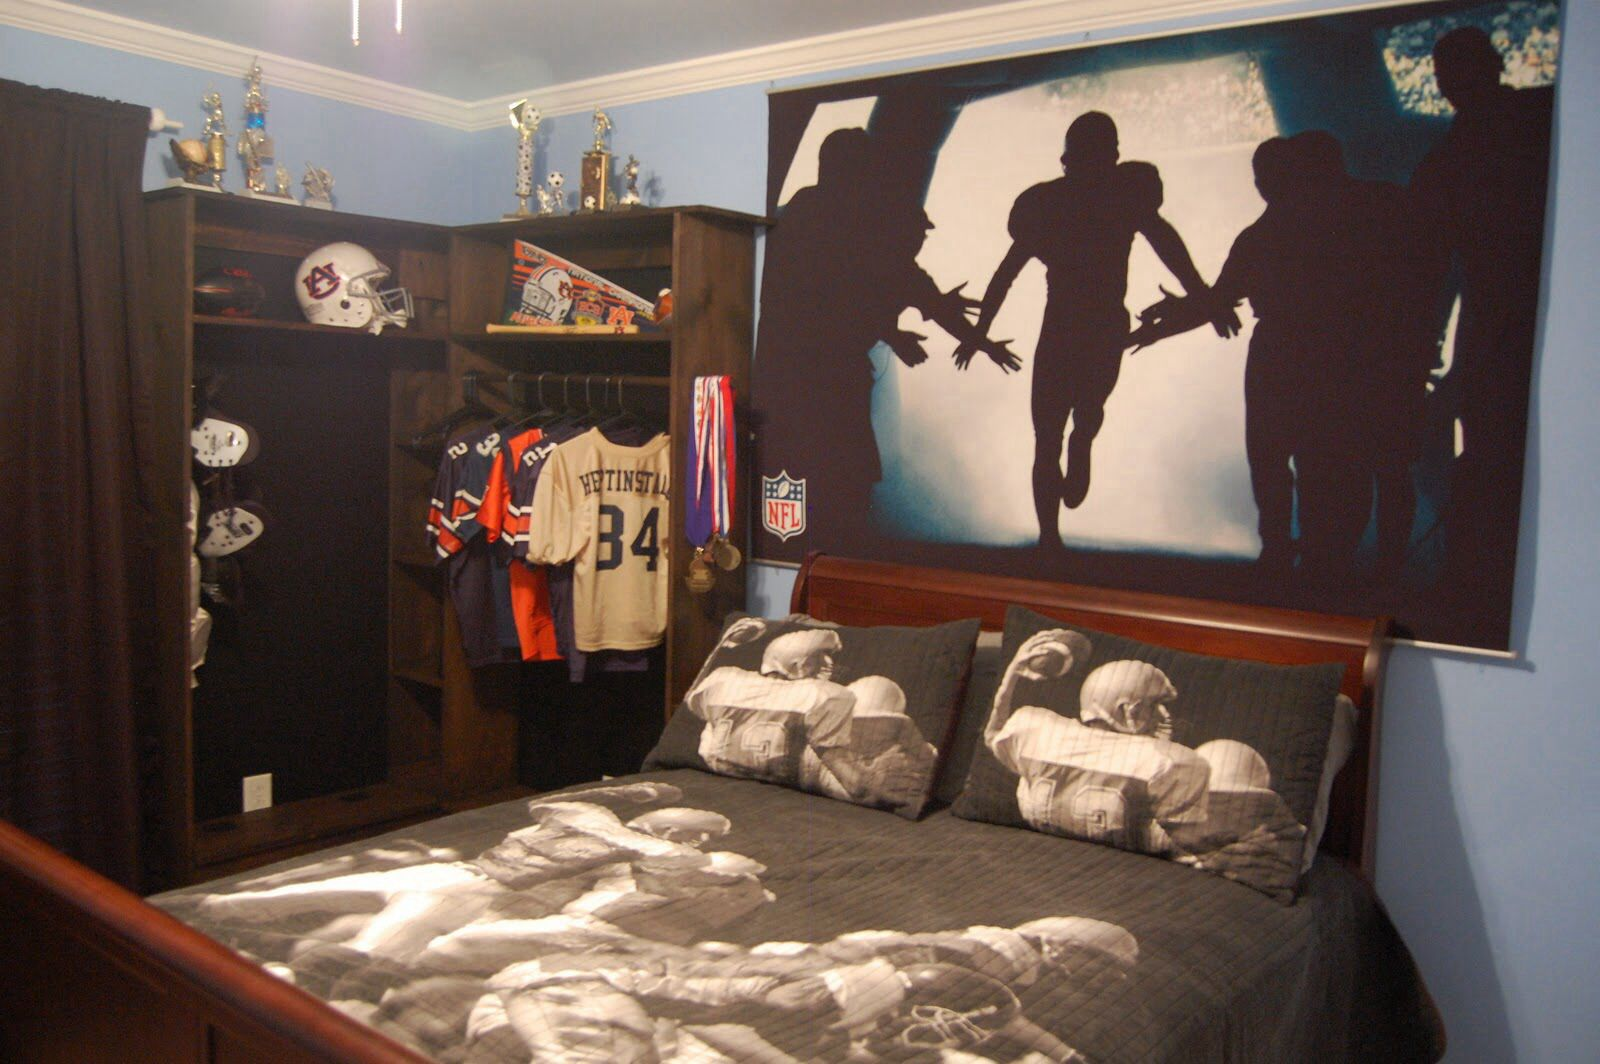 Boys football bedroom ideas - 17 Best Images About Boys Room On Pinterest Vinyls Football Rooms And Football Bedroom